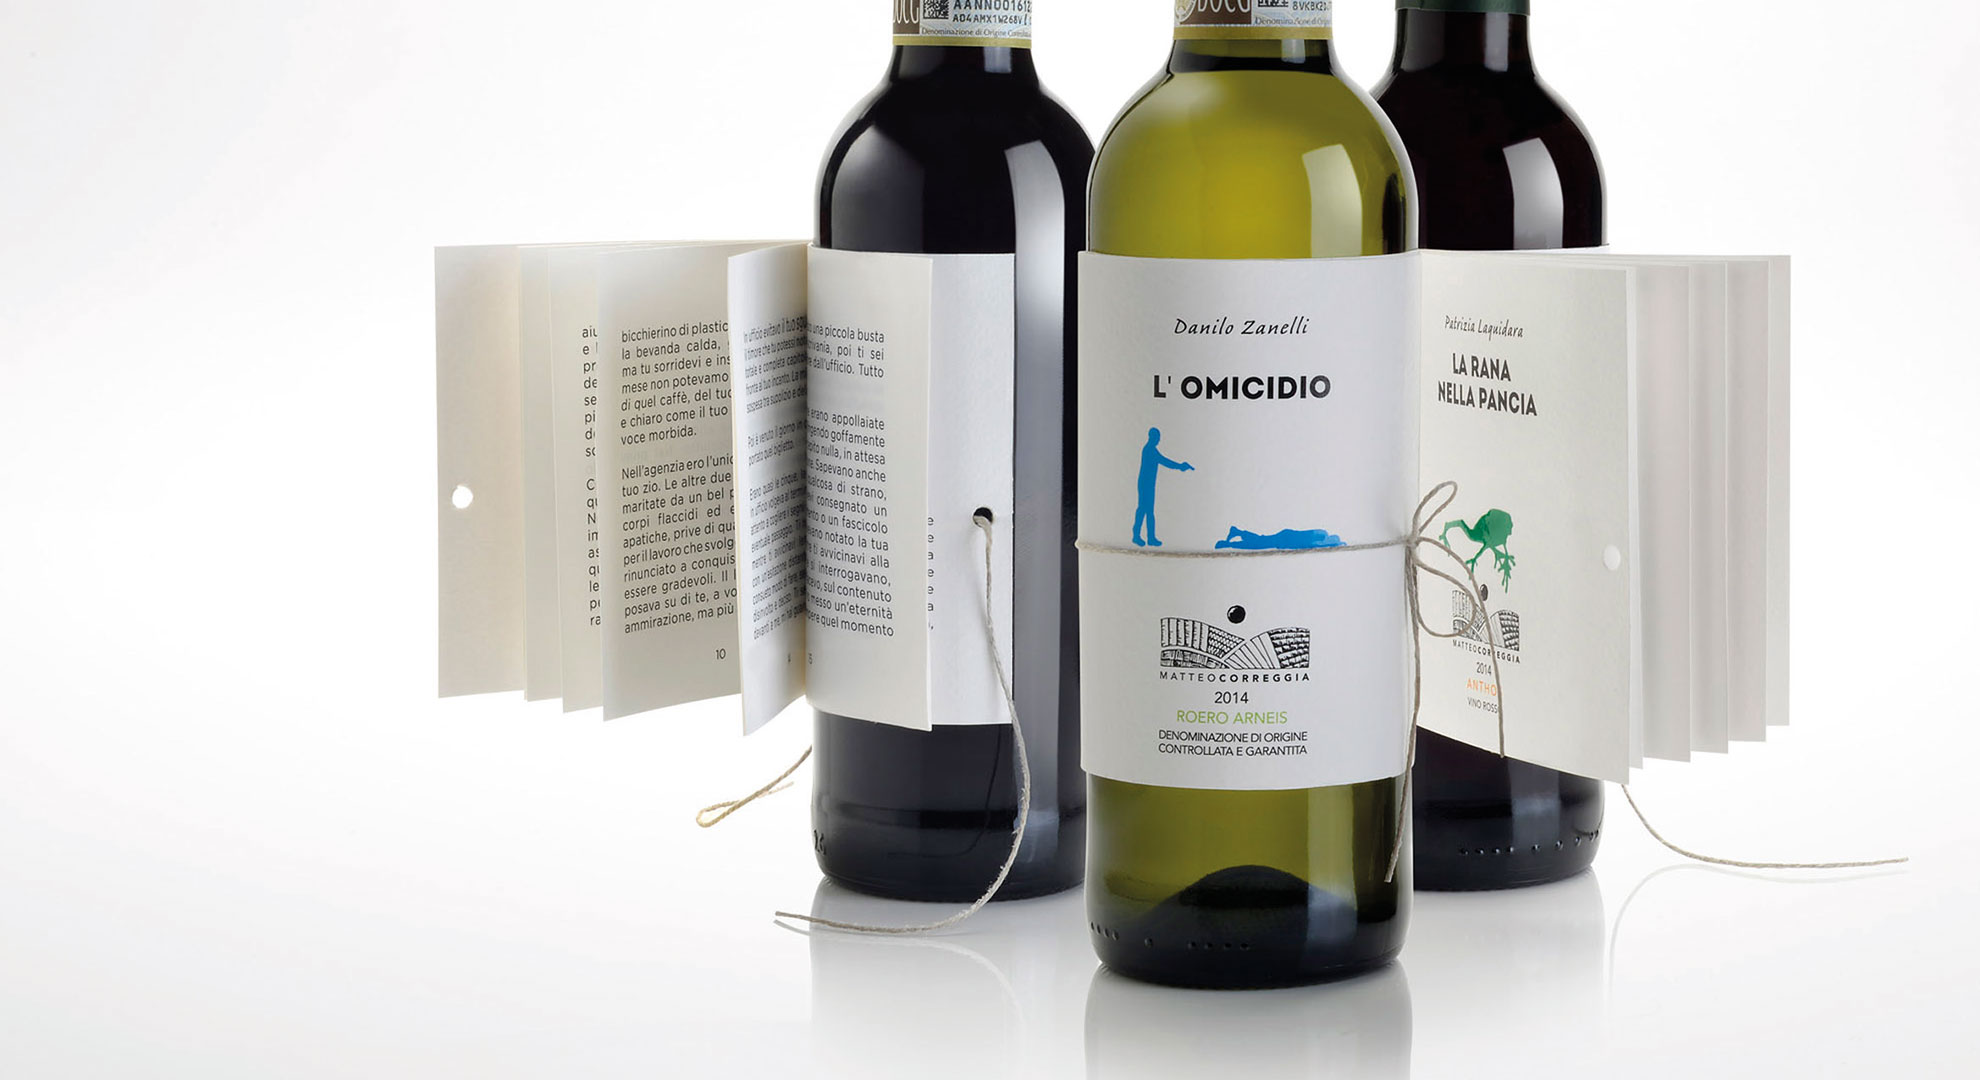 Librottiglia Wine Label - PaperSpecs